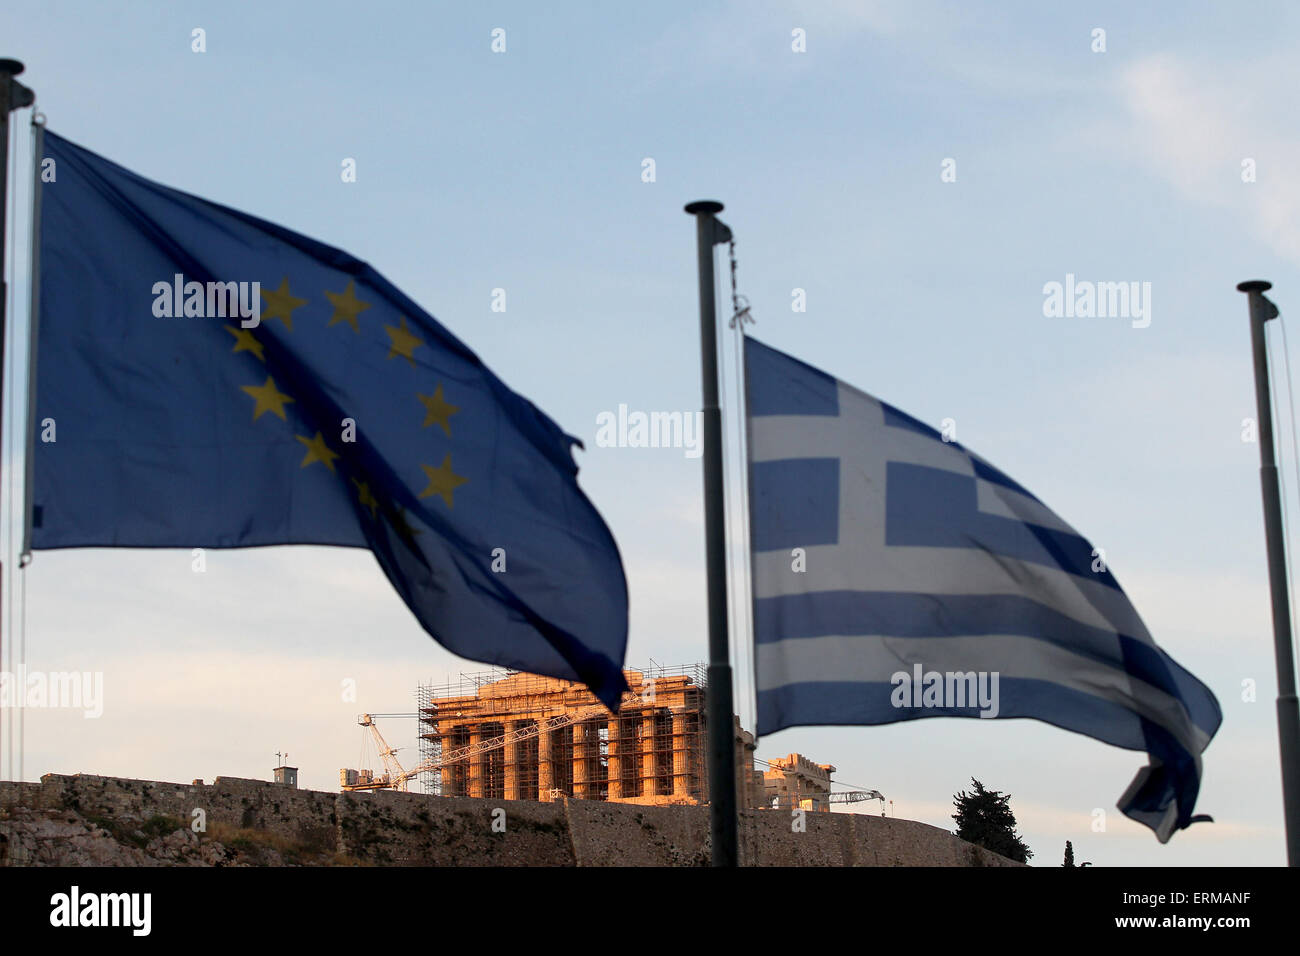 Athens, Greece. 4th June, 2015. Greek and European Union flags fly while the sun sets over the Acropolis, in Athens, - Stock Image